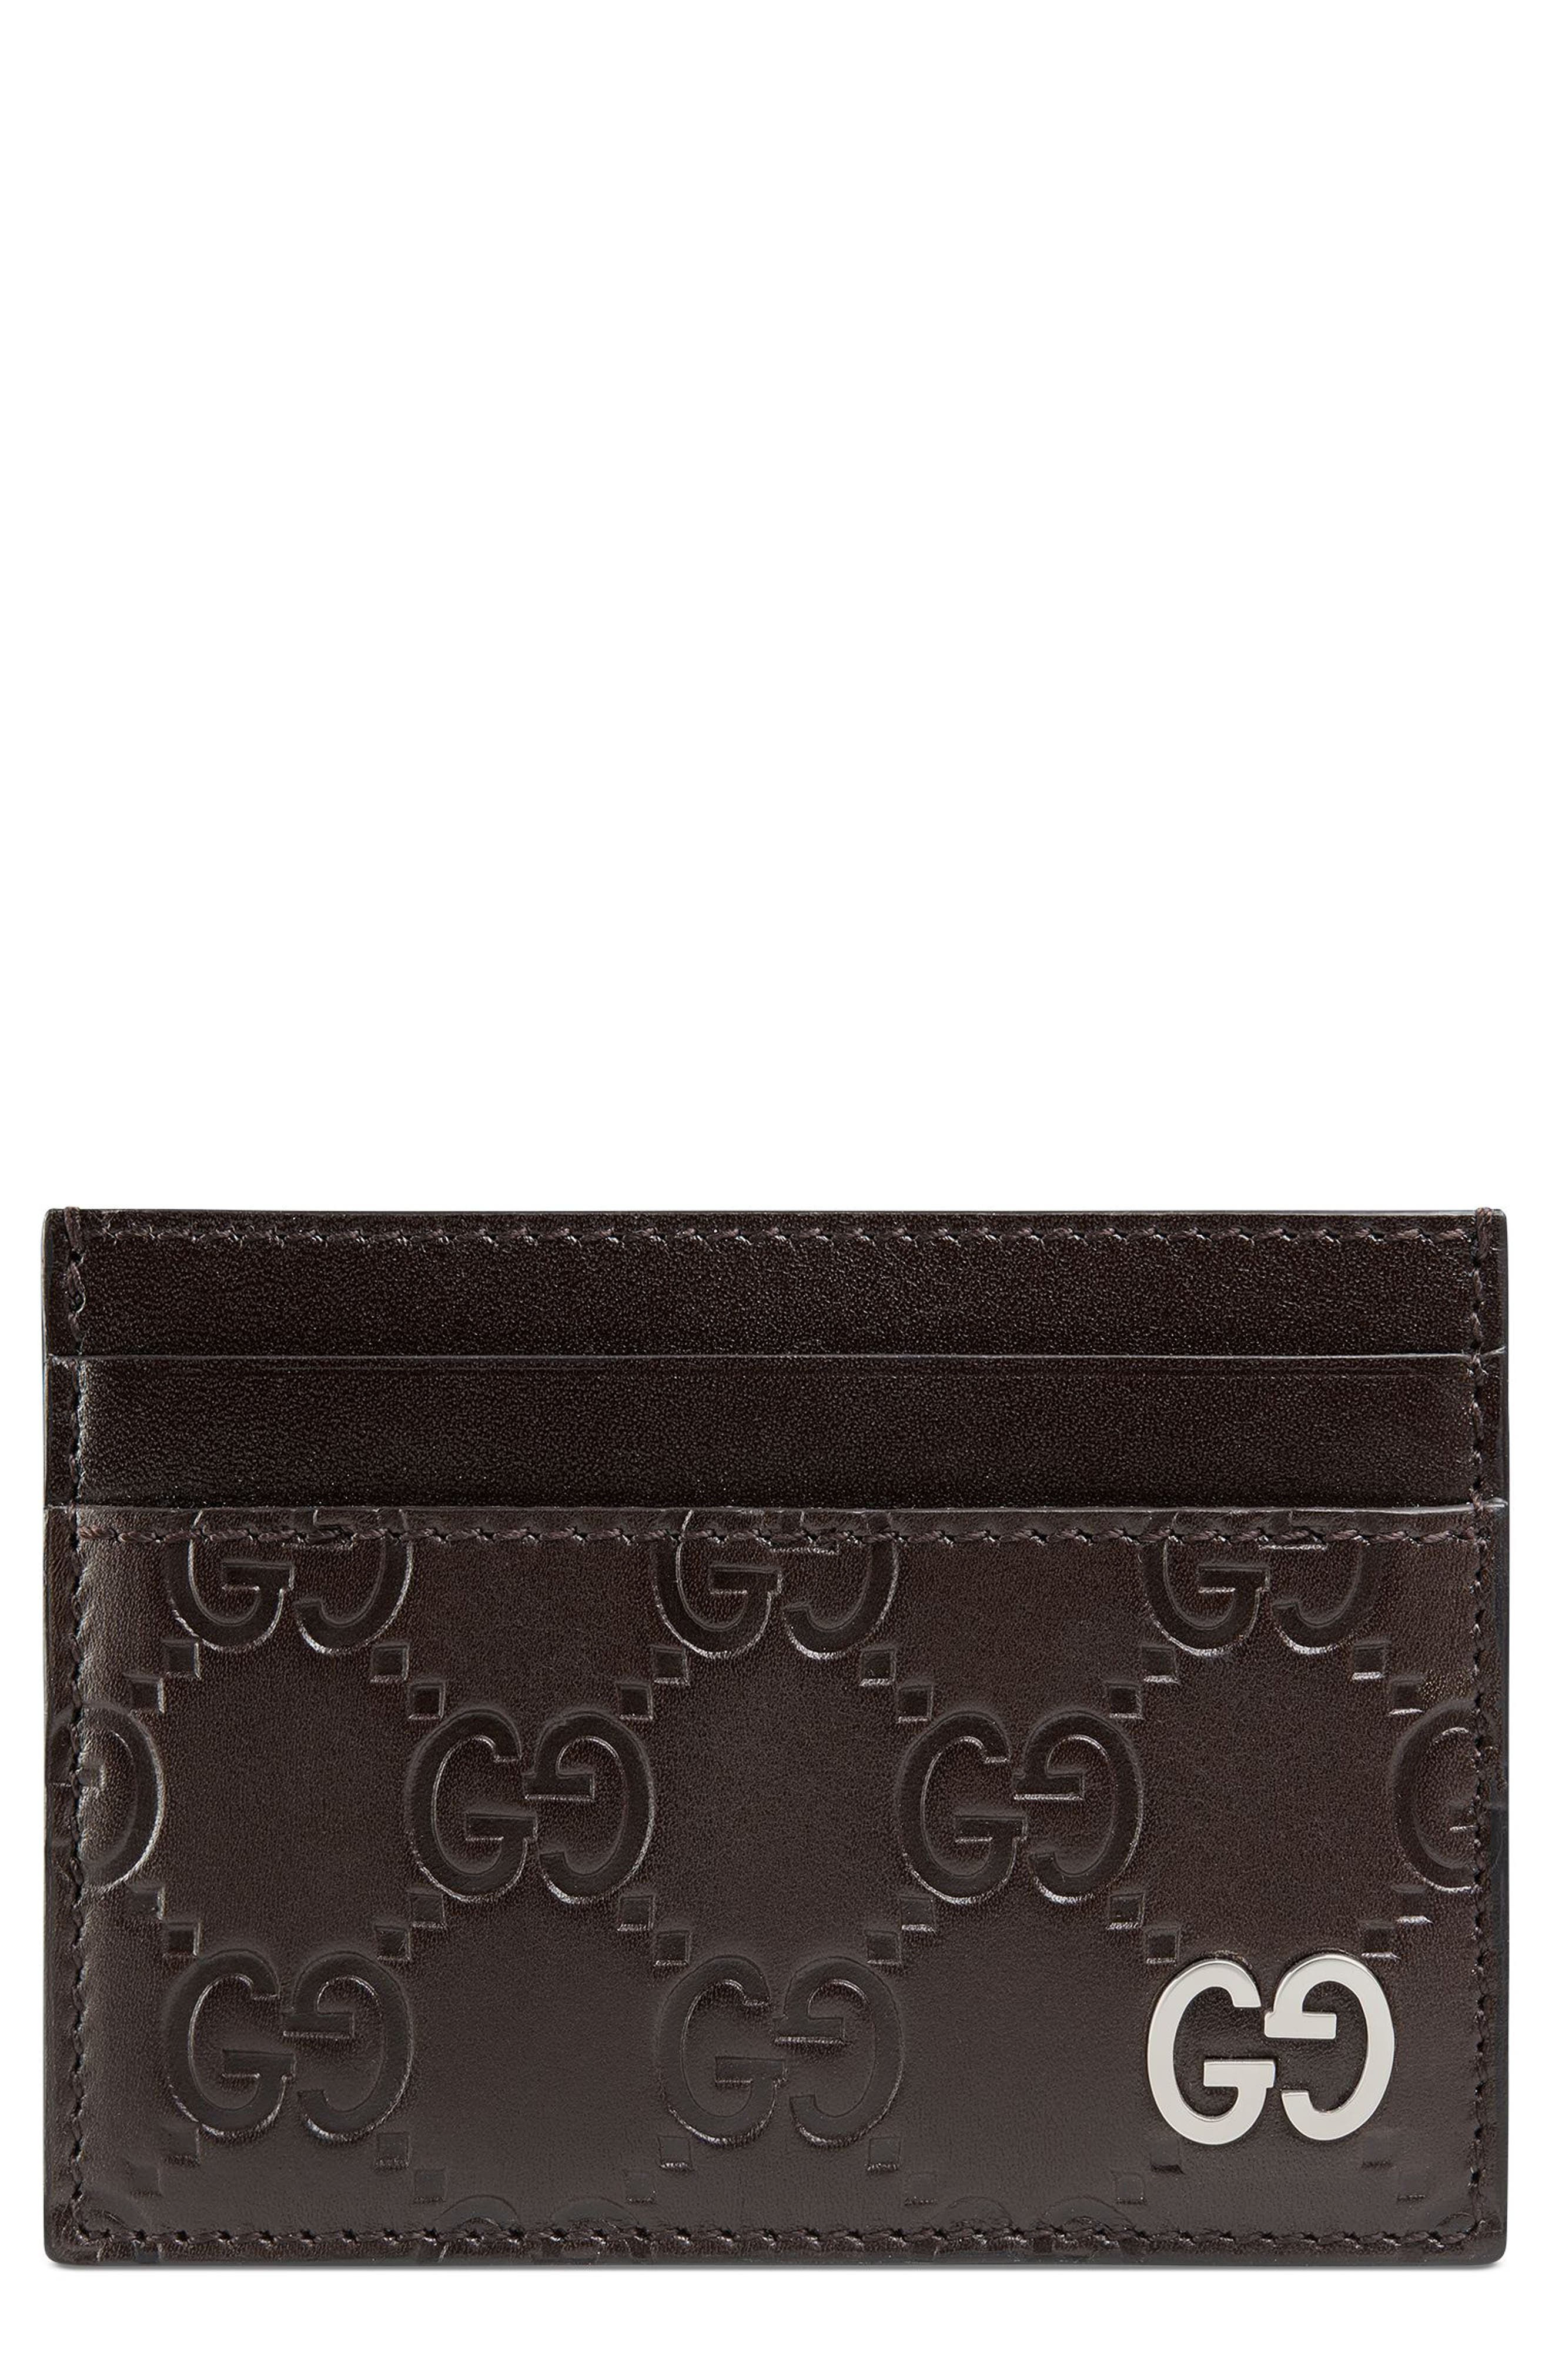 Gucci Dorian Leather Card Case